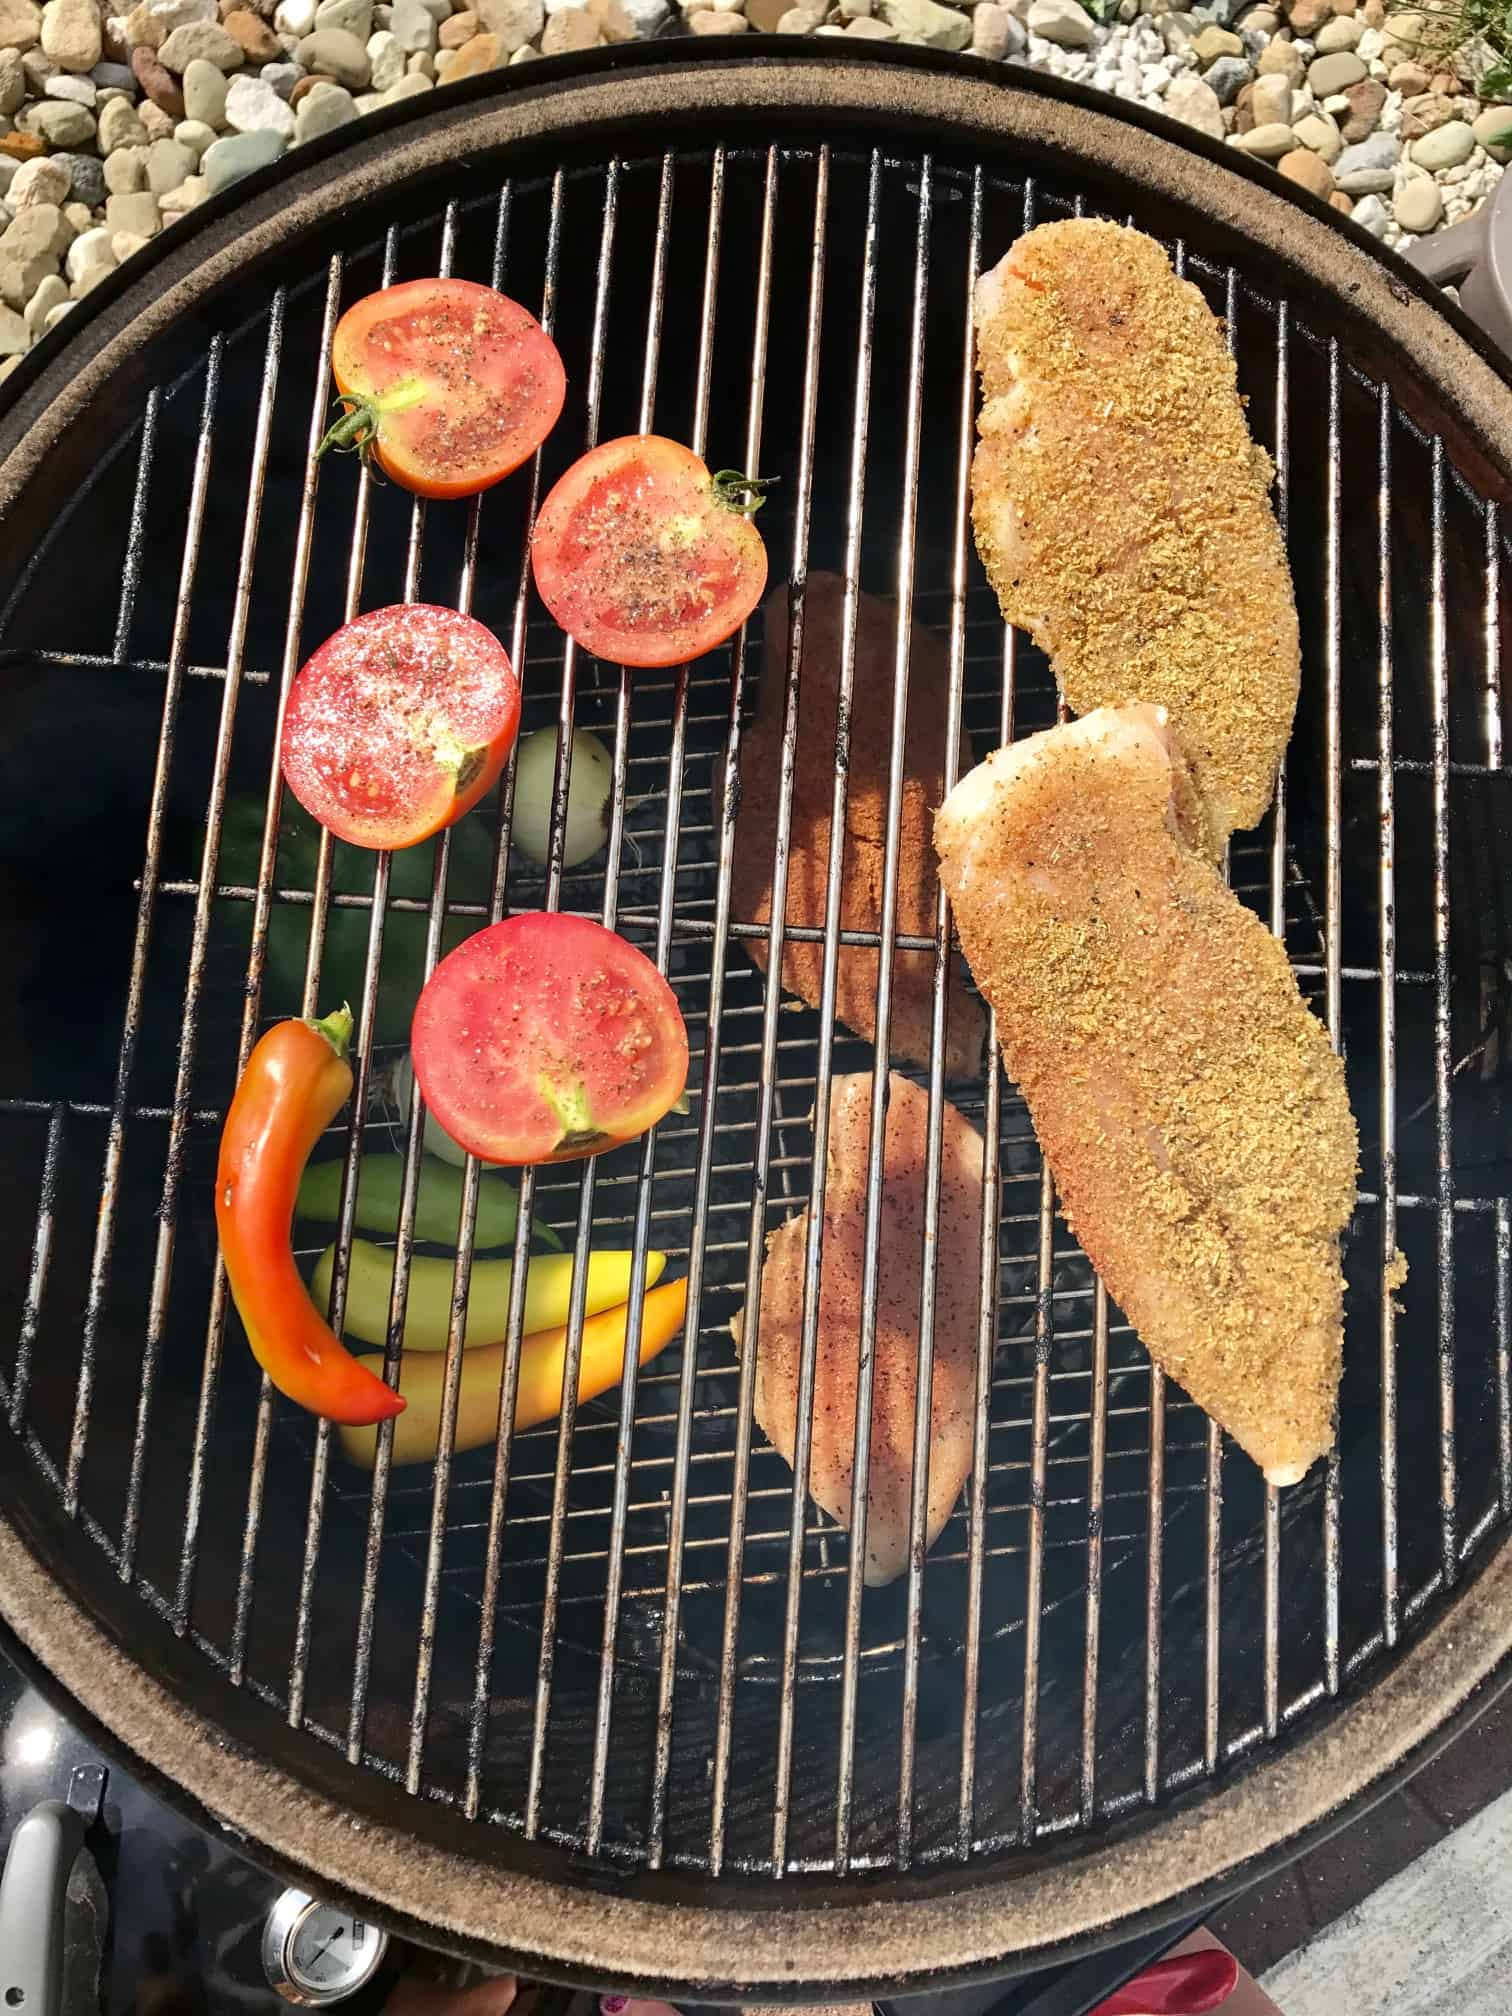 Chicken and vegetables on weber grill overhead shot